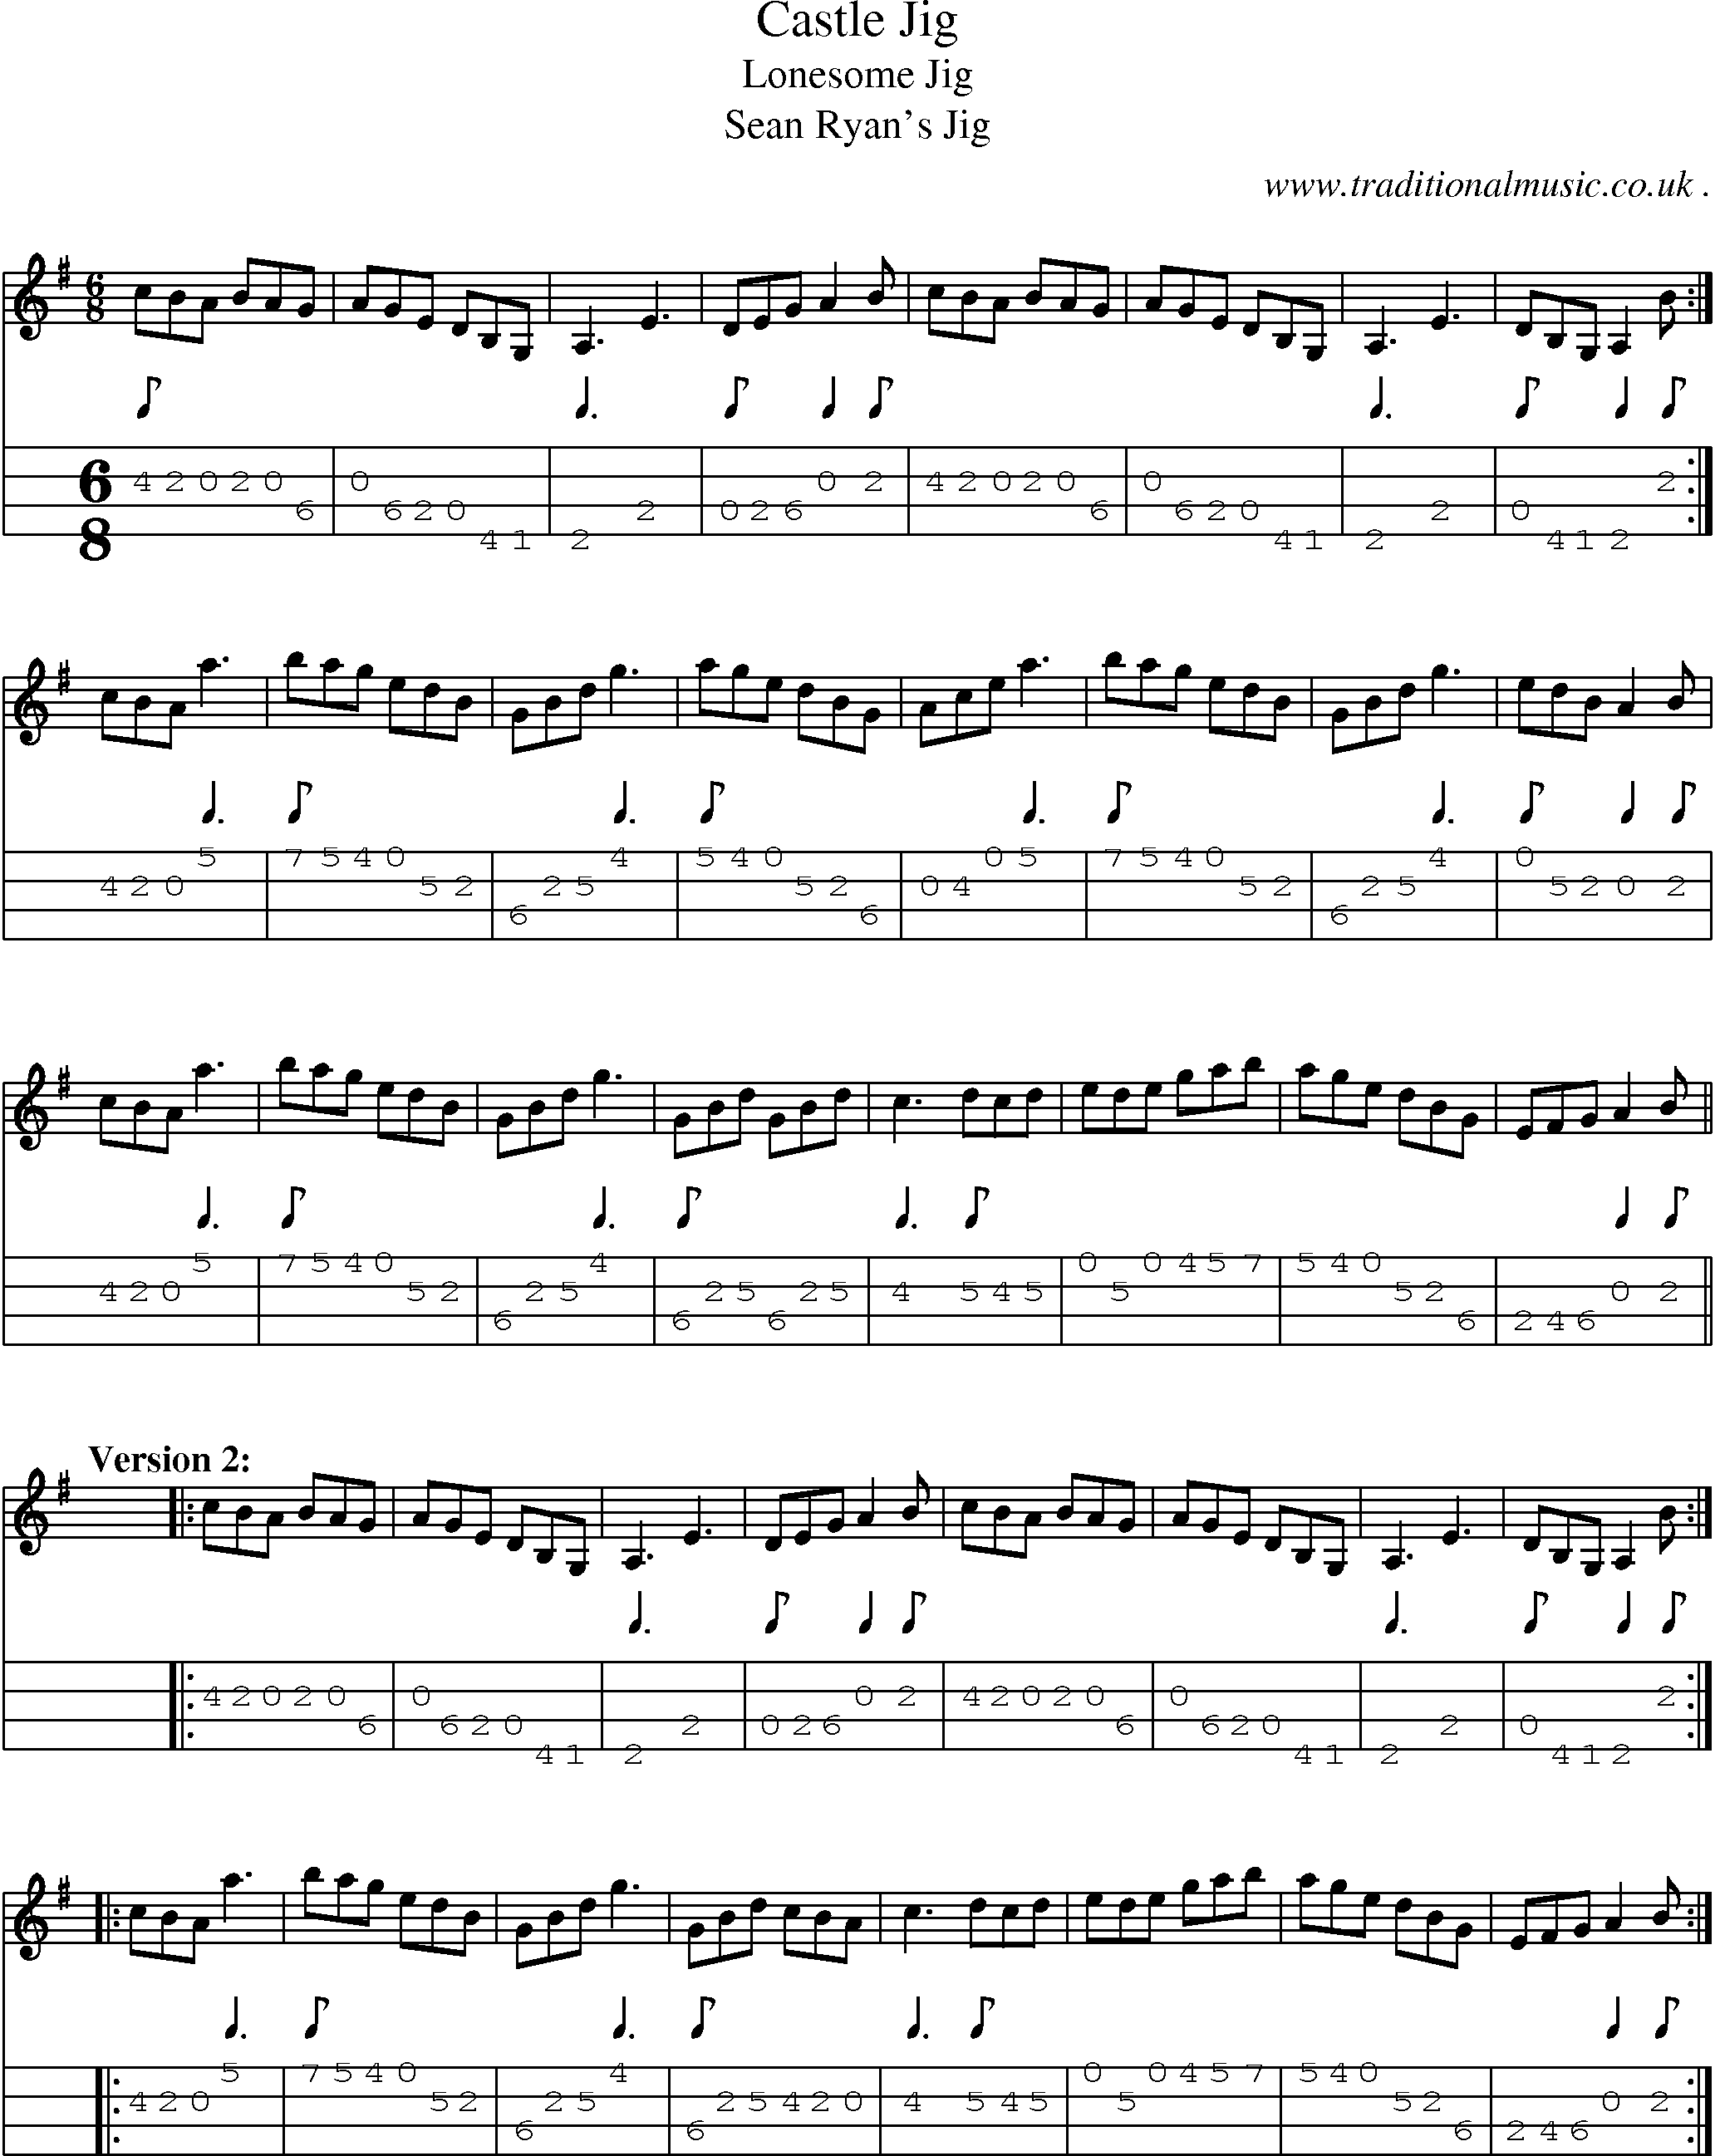 http://www.traditionalmusic.co.uk/folk-music-mandolin-tab/png/castle_jig.png